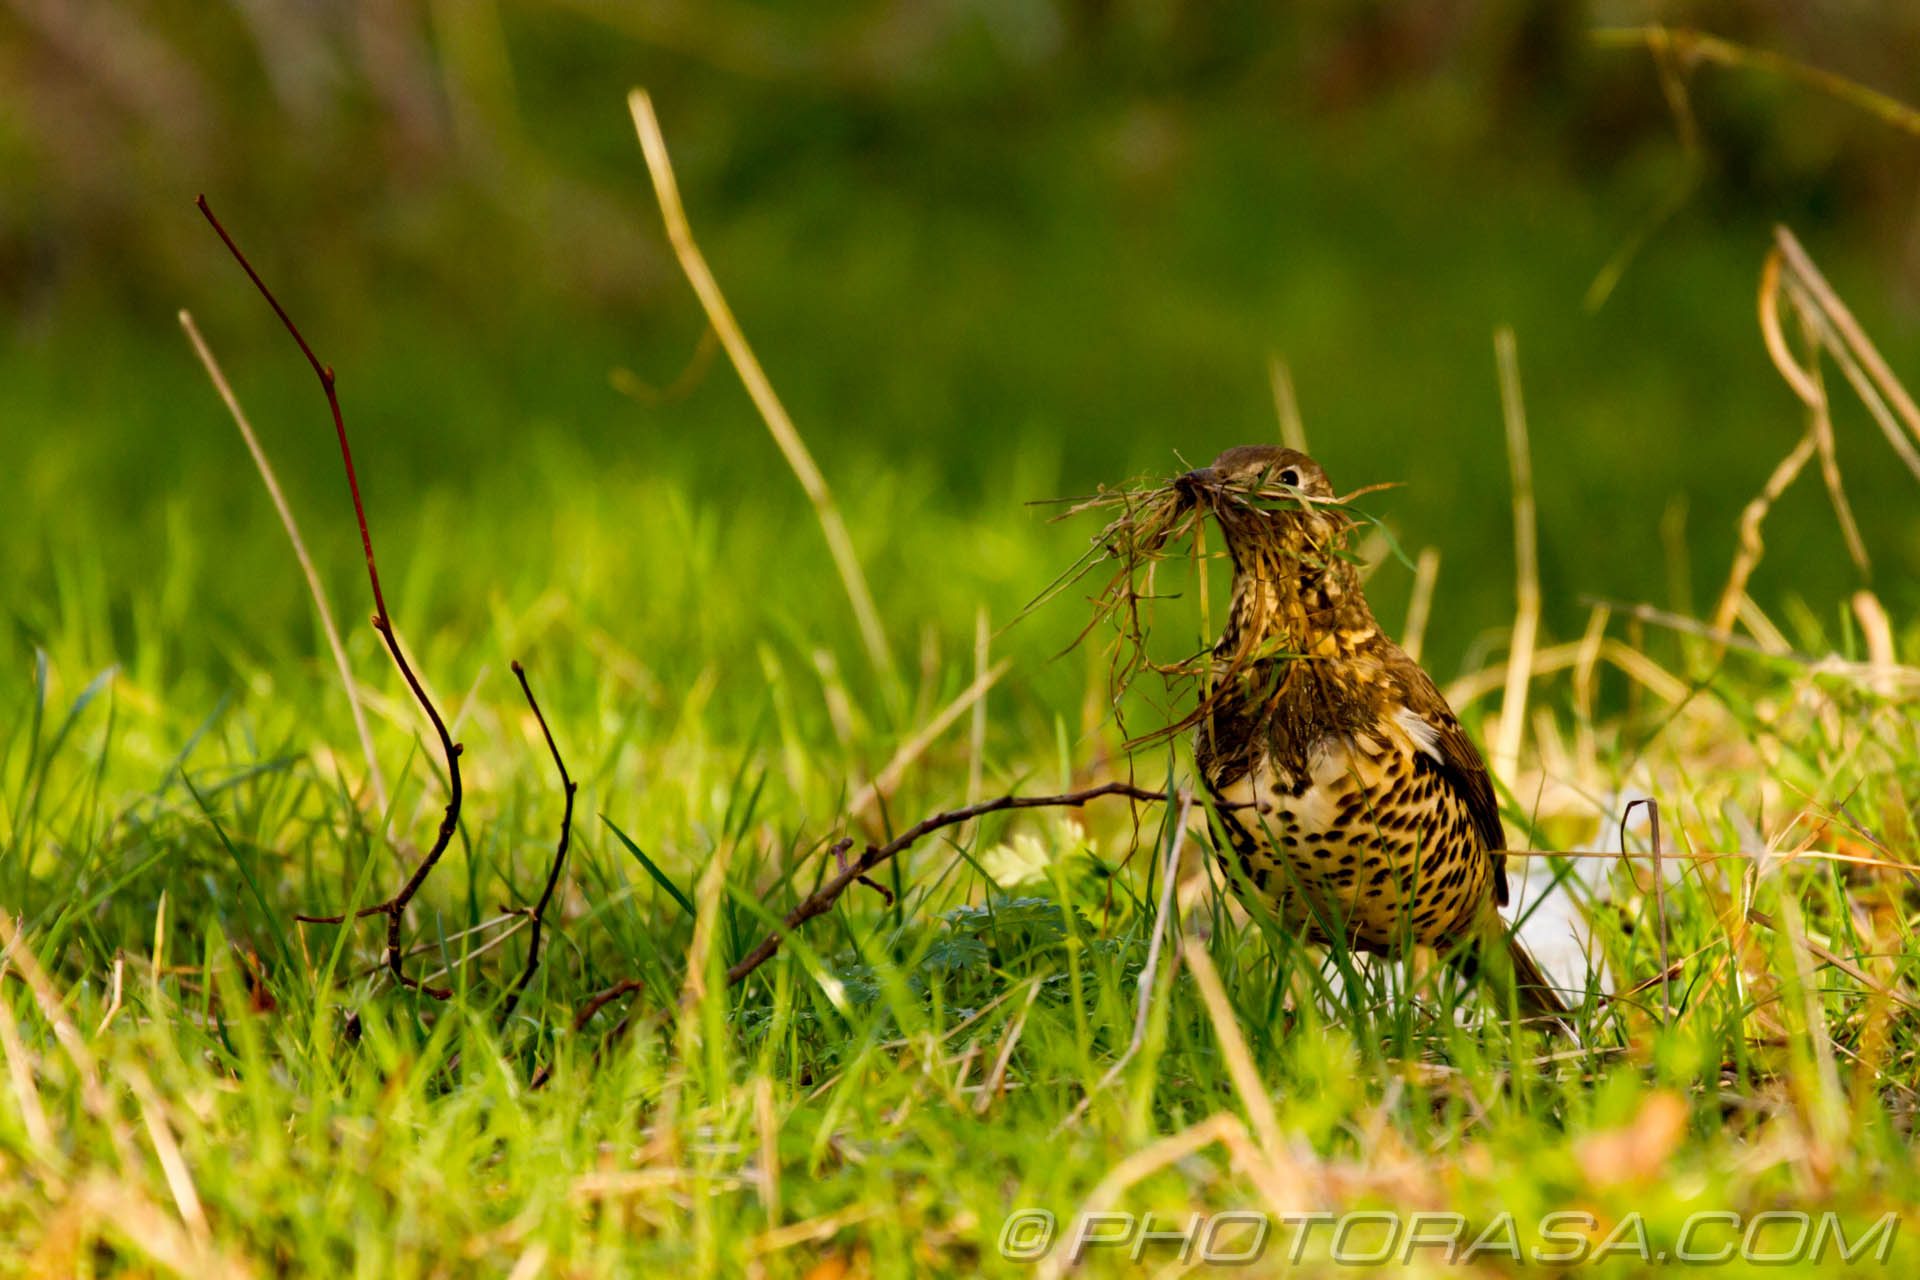 http://photorasa.com/mistle-thrush-scavenging-nest-materials/keeping-an-eye-out-for-more-stuff-to-collect/